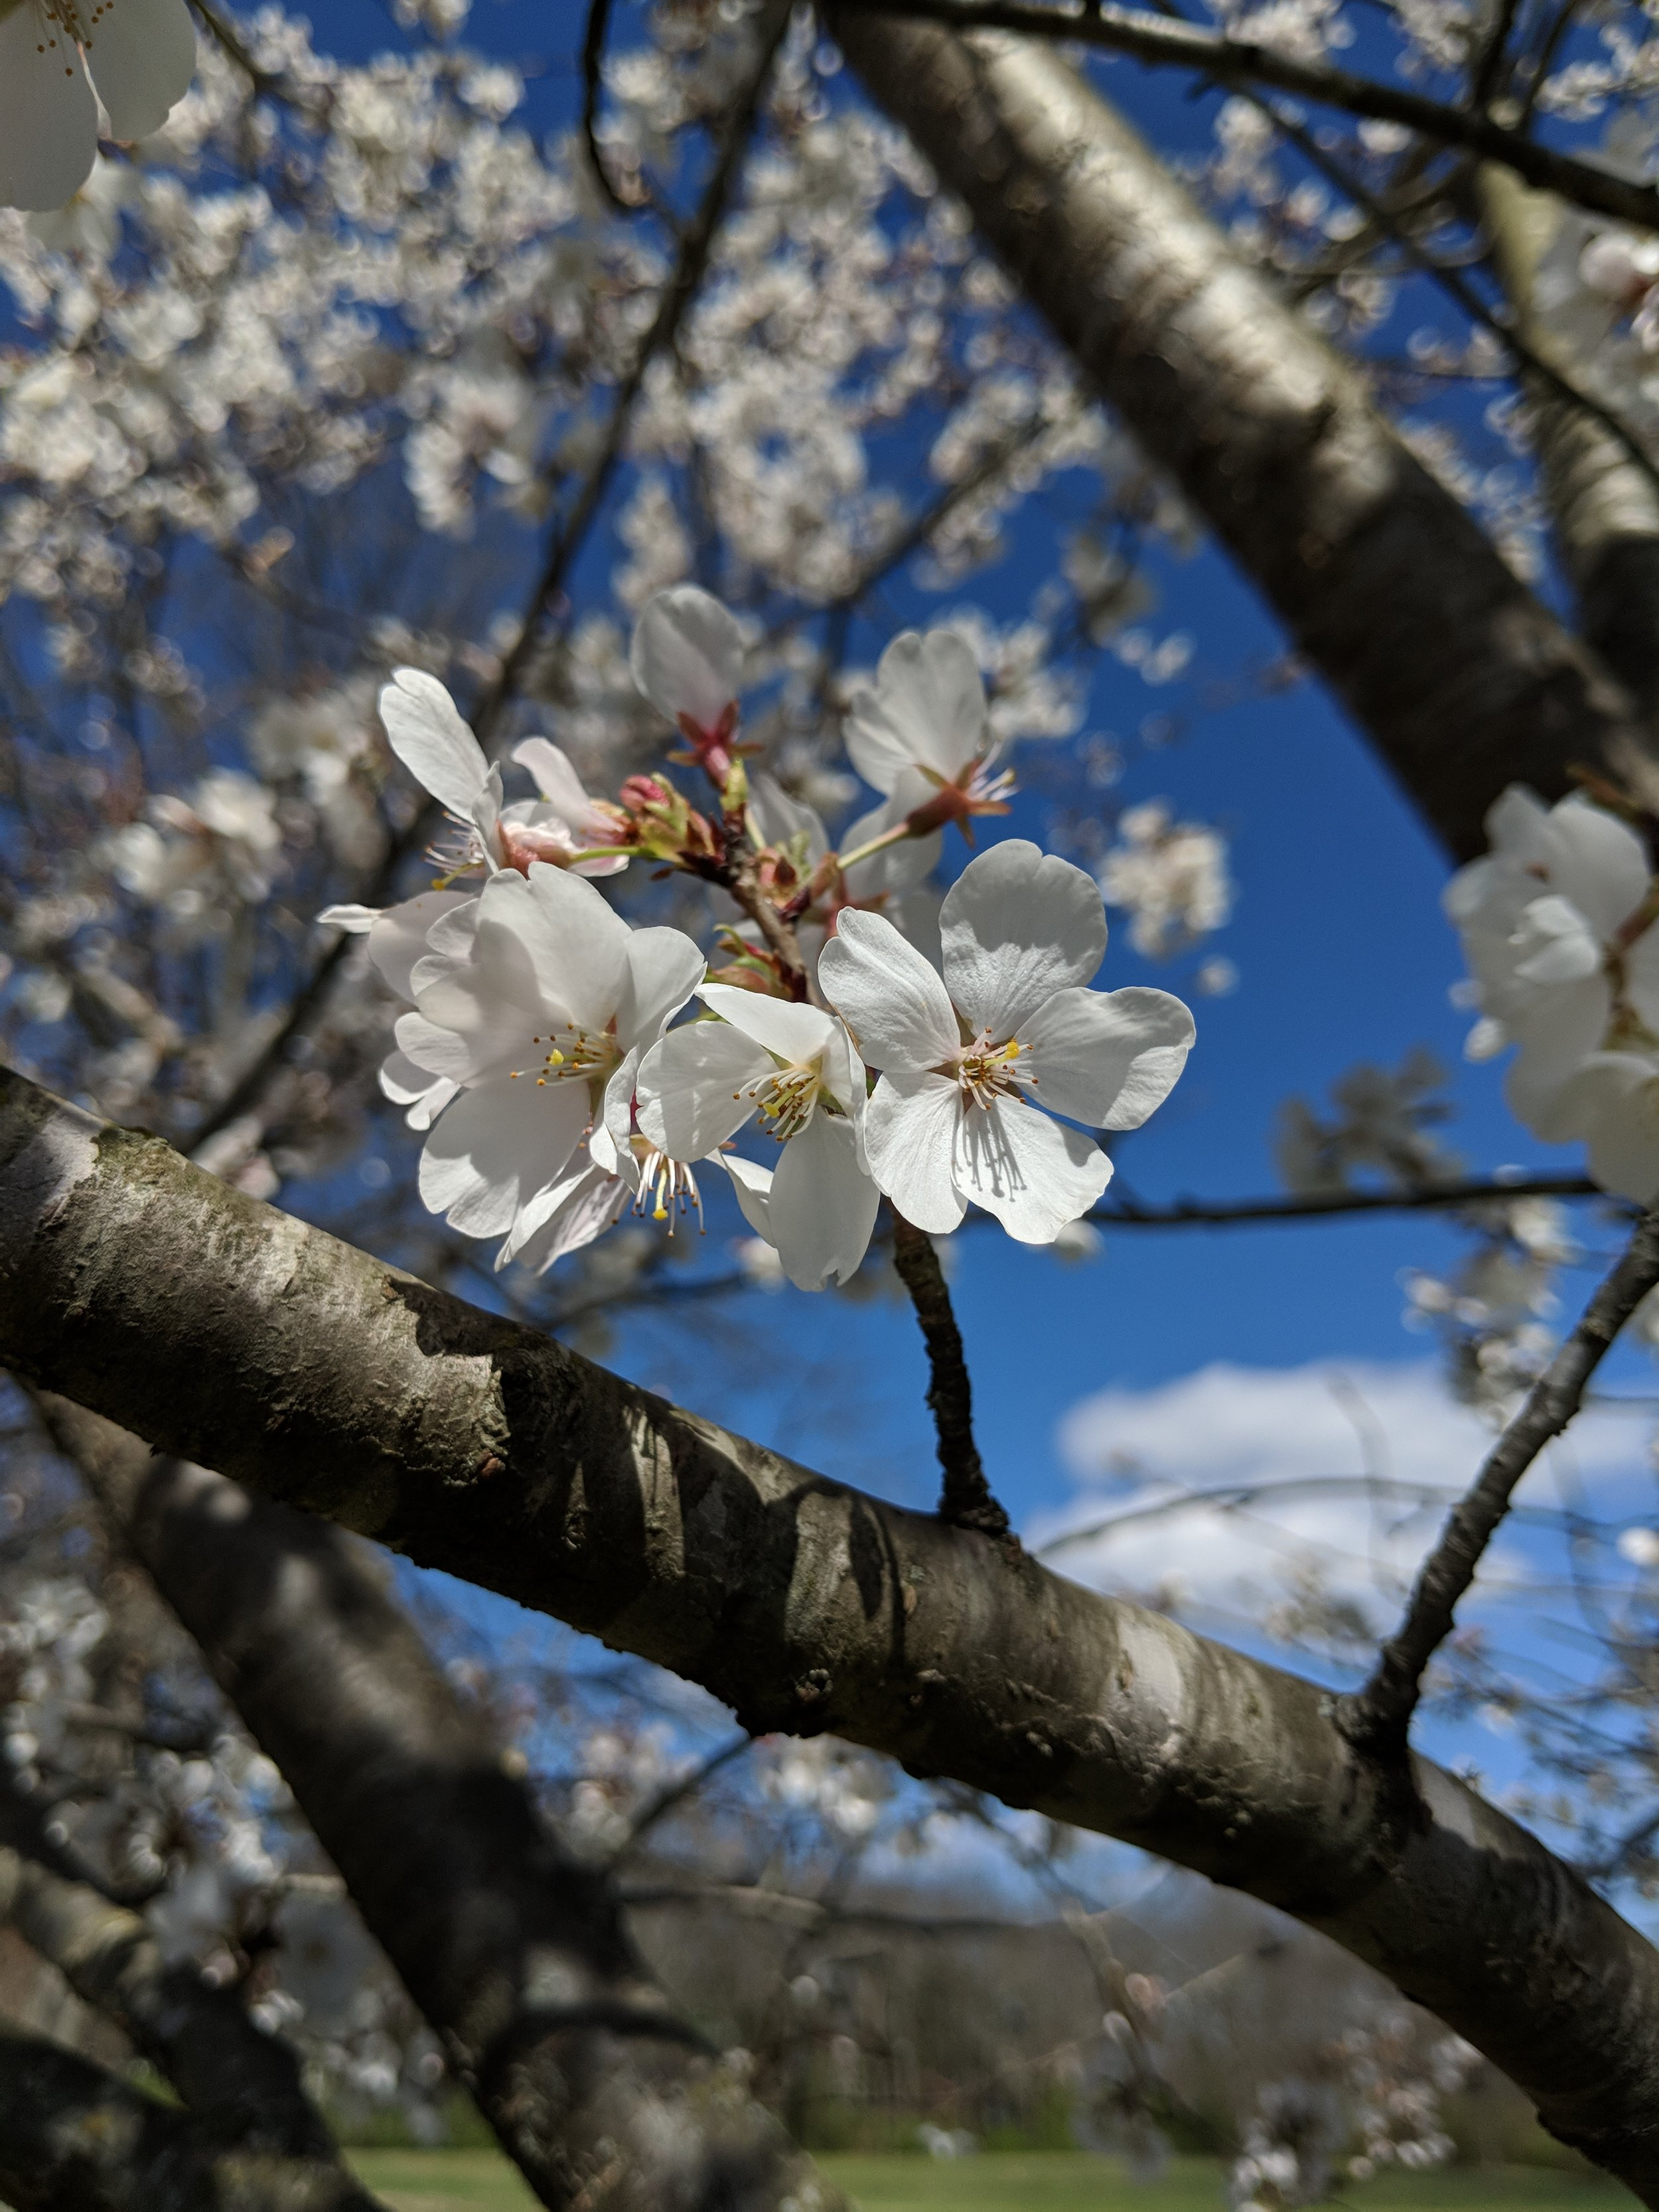 Press on Cherry Trees - Click here for Tennessean/AP Wire storyClick here for News Channel 2Click here for News Channel 5Click here for News Channel 4Click here for Fox 17 News